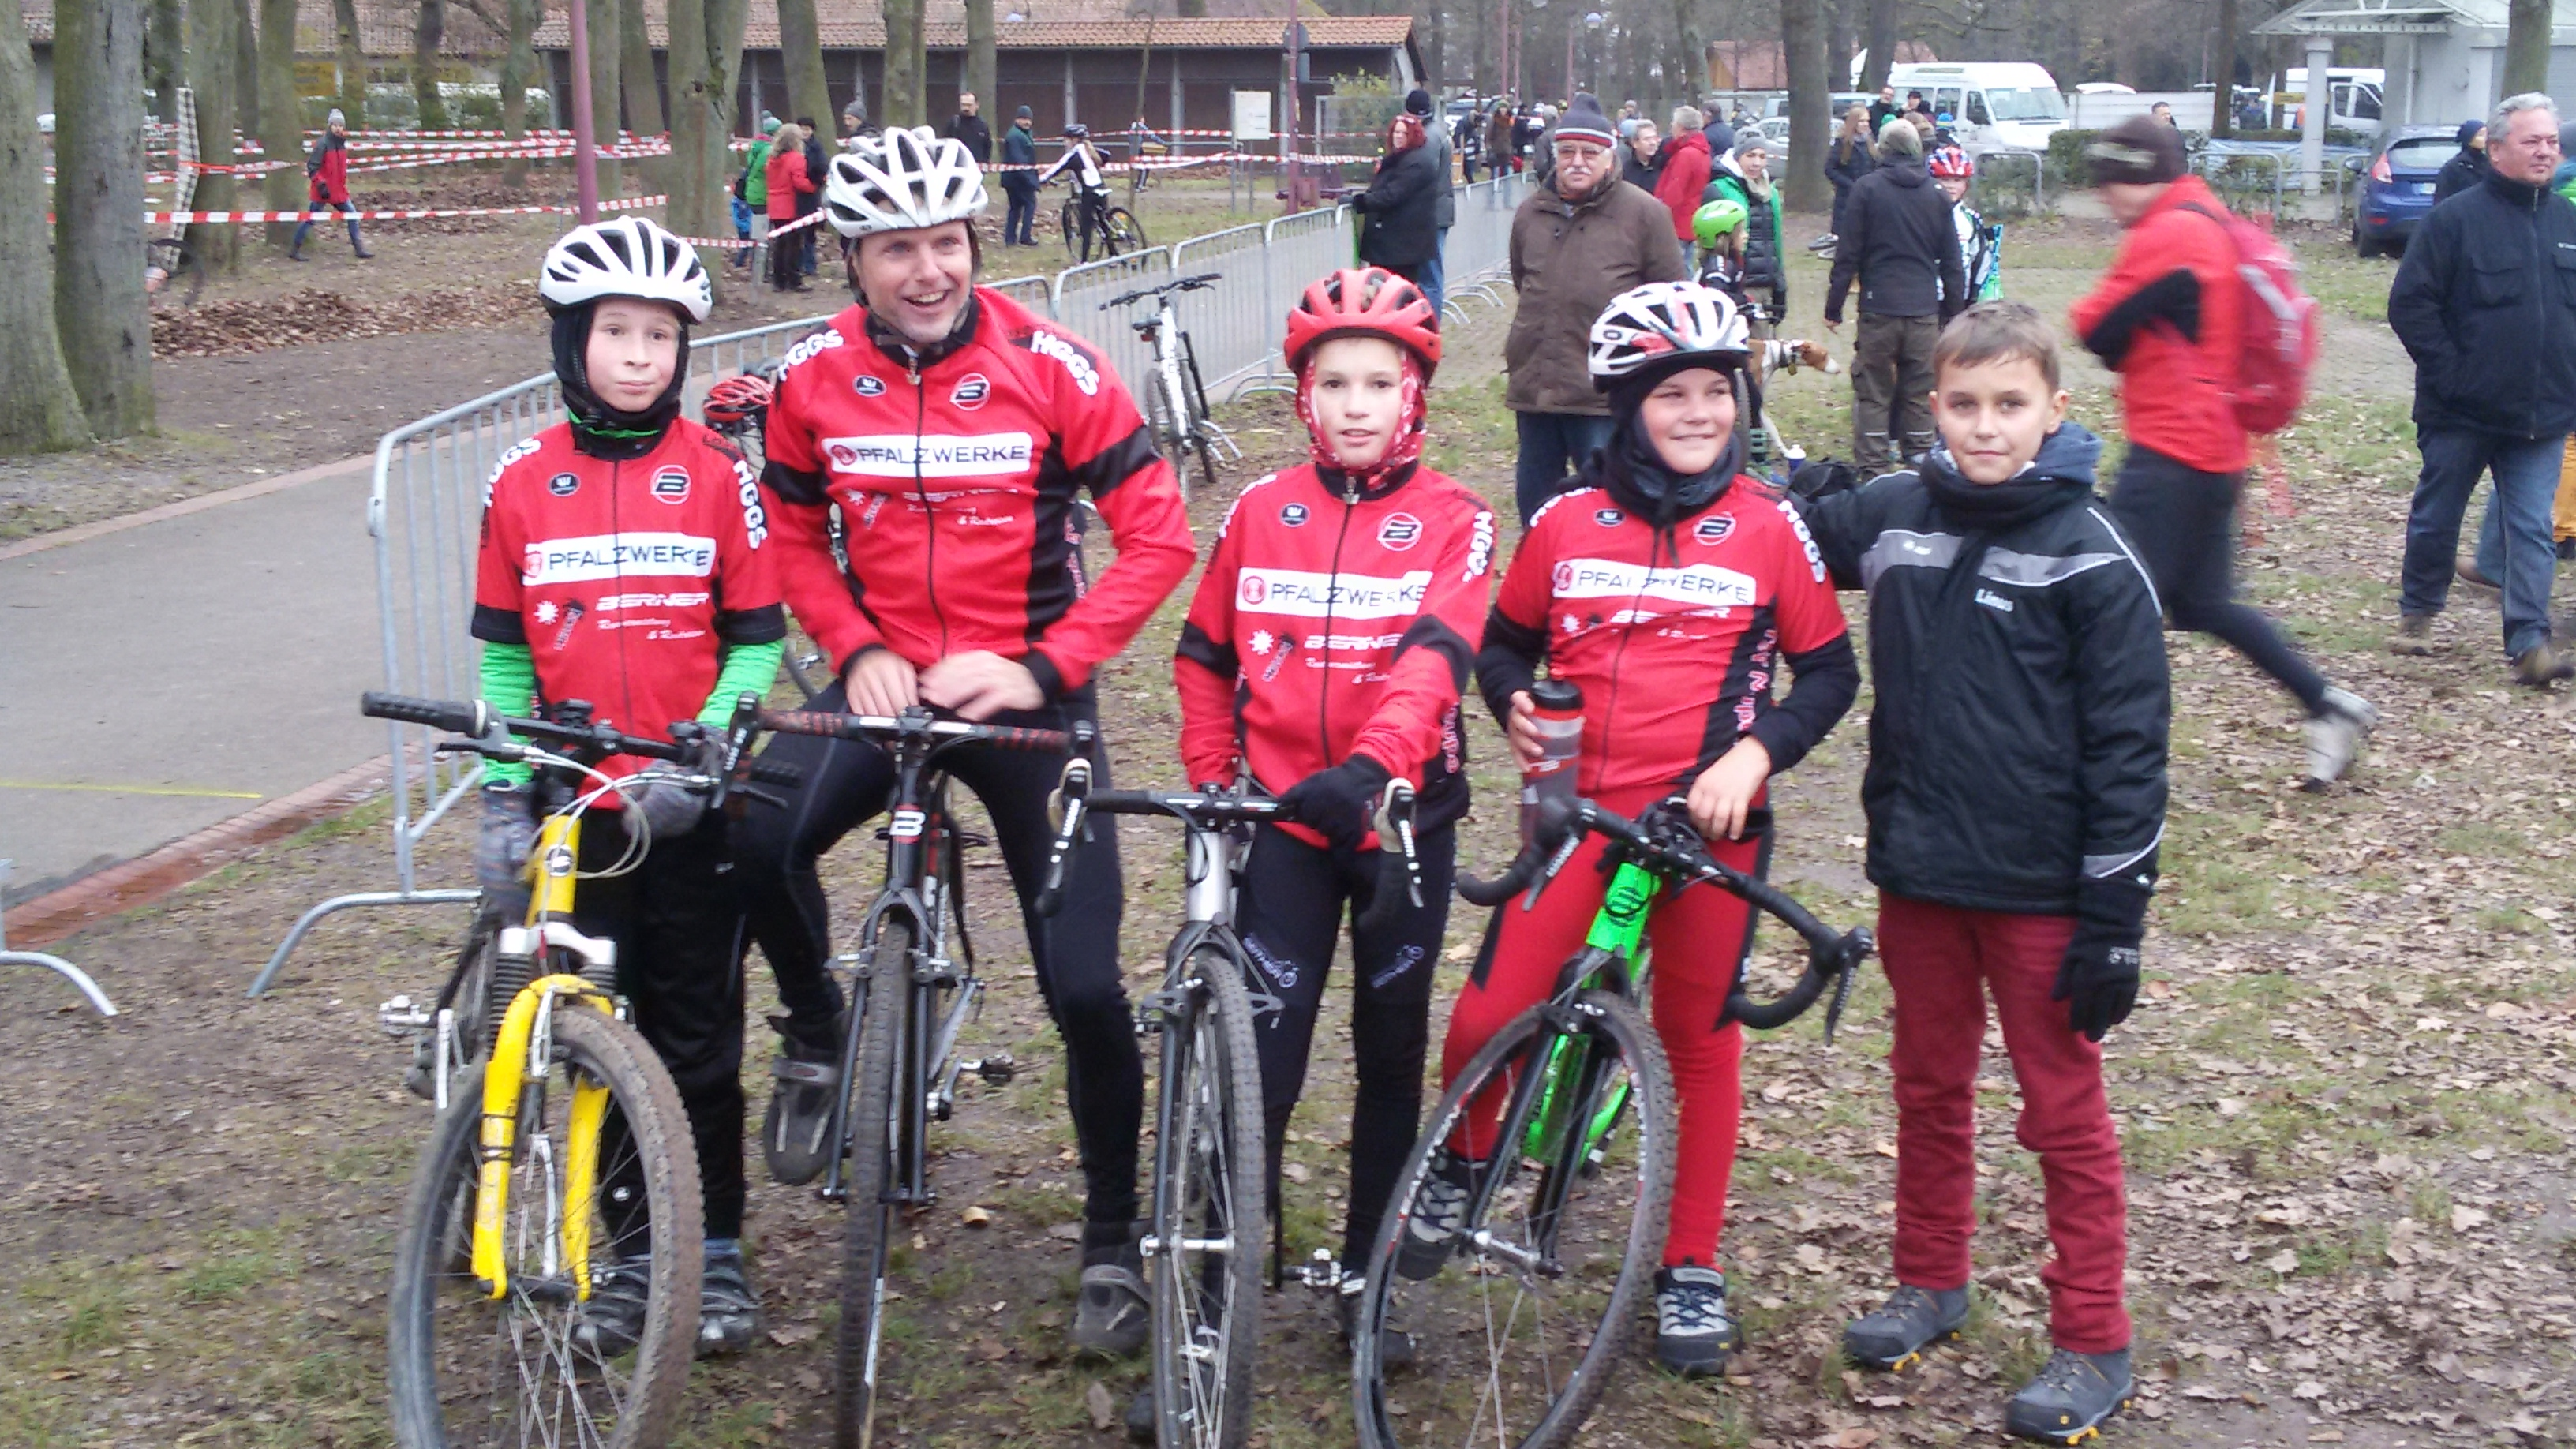 LV Cross Herxheim 11-2014